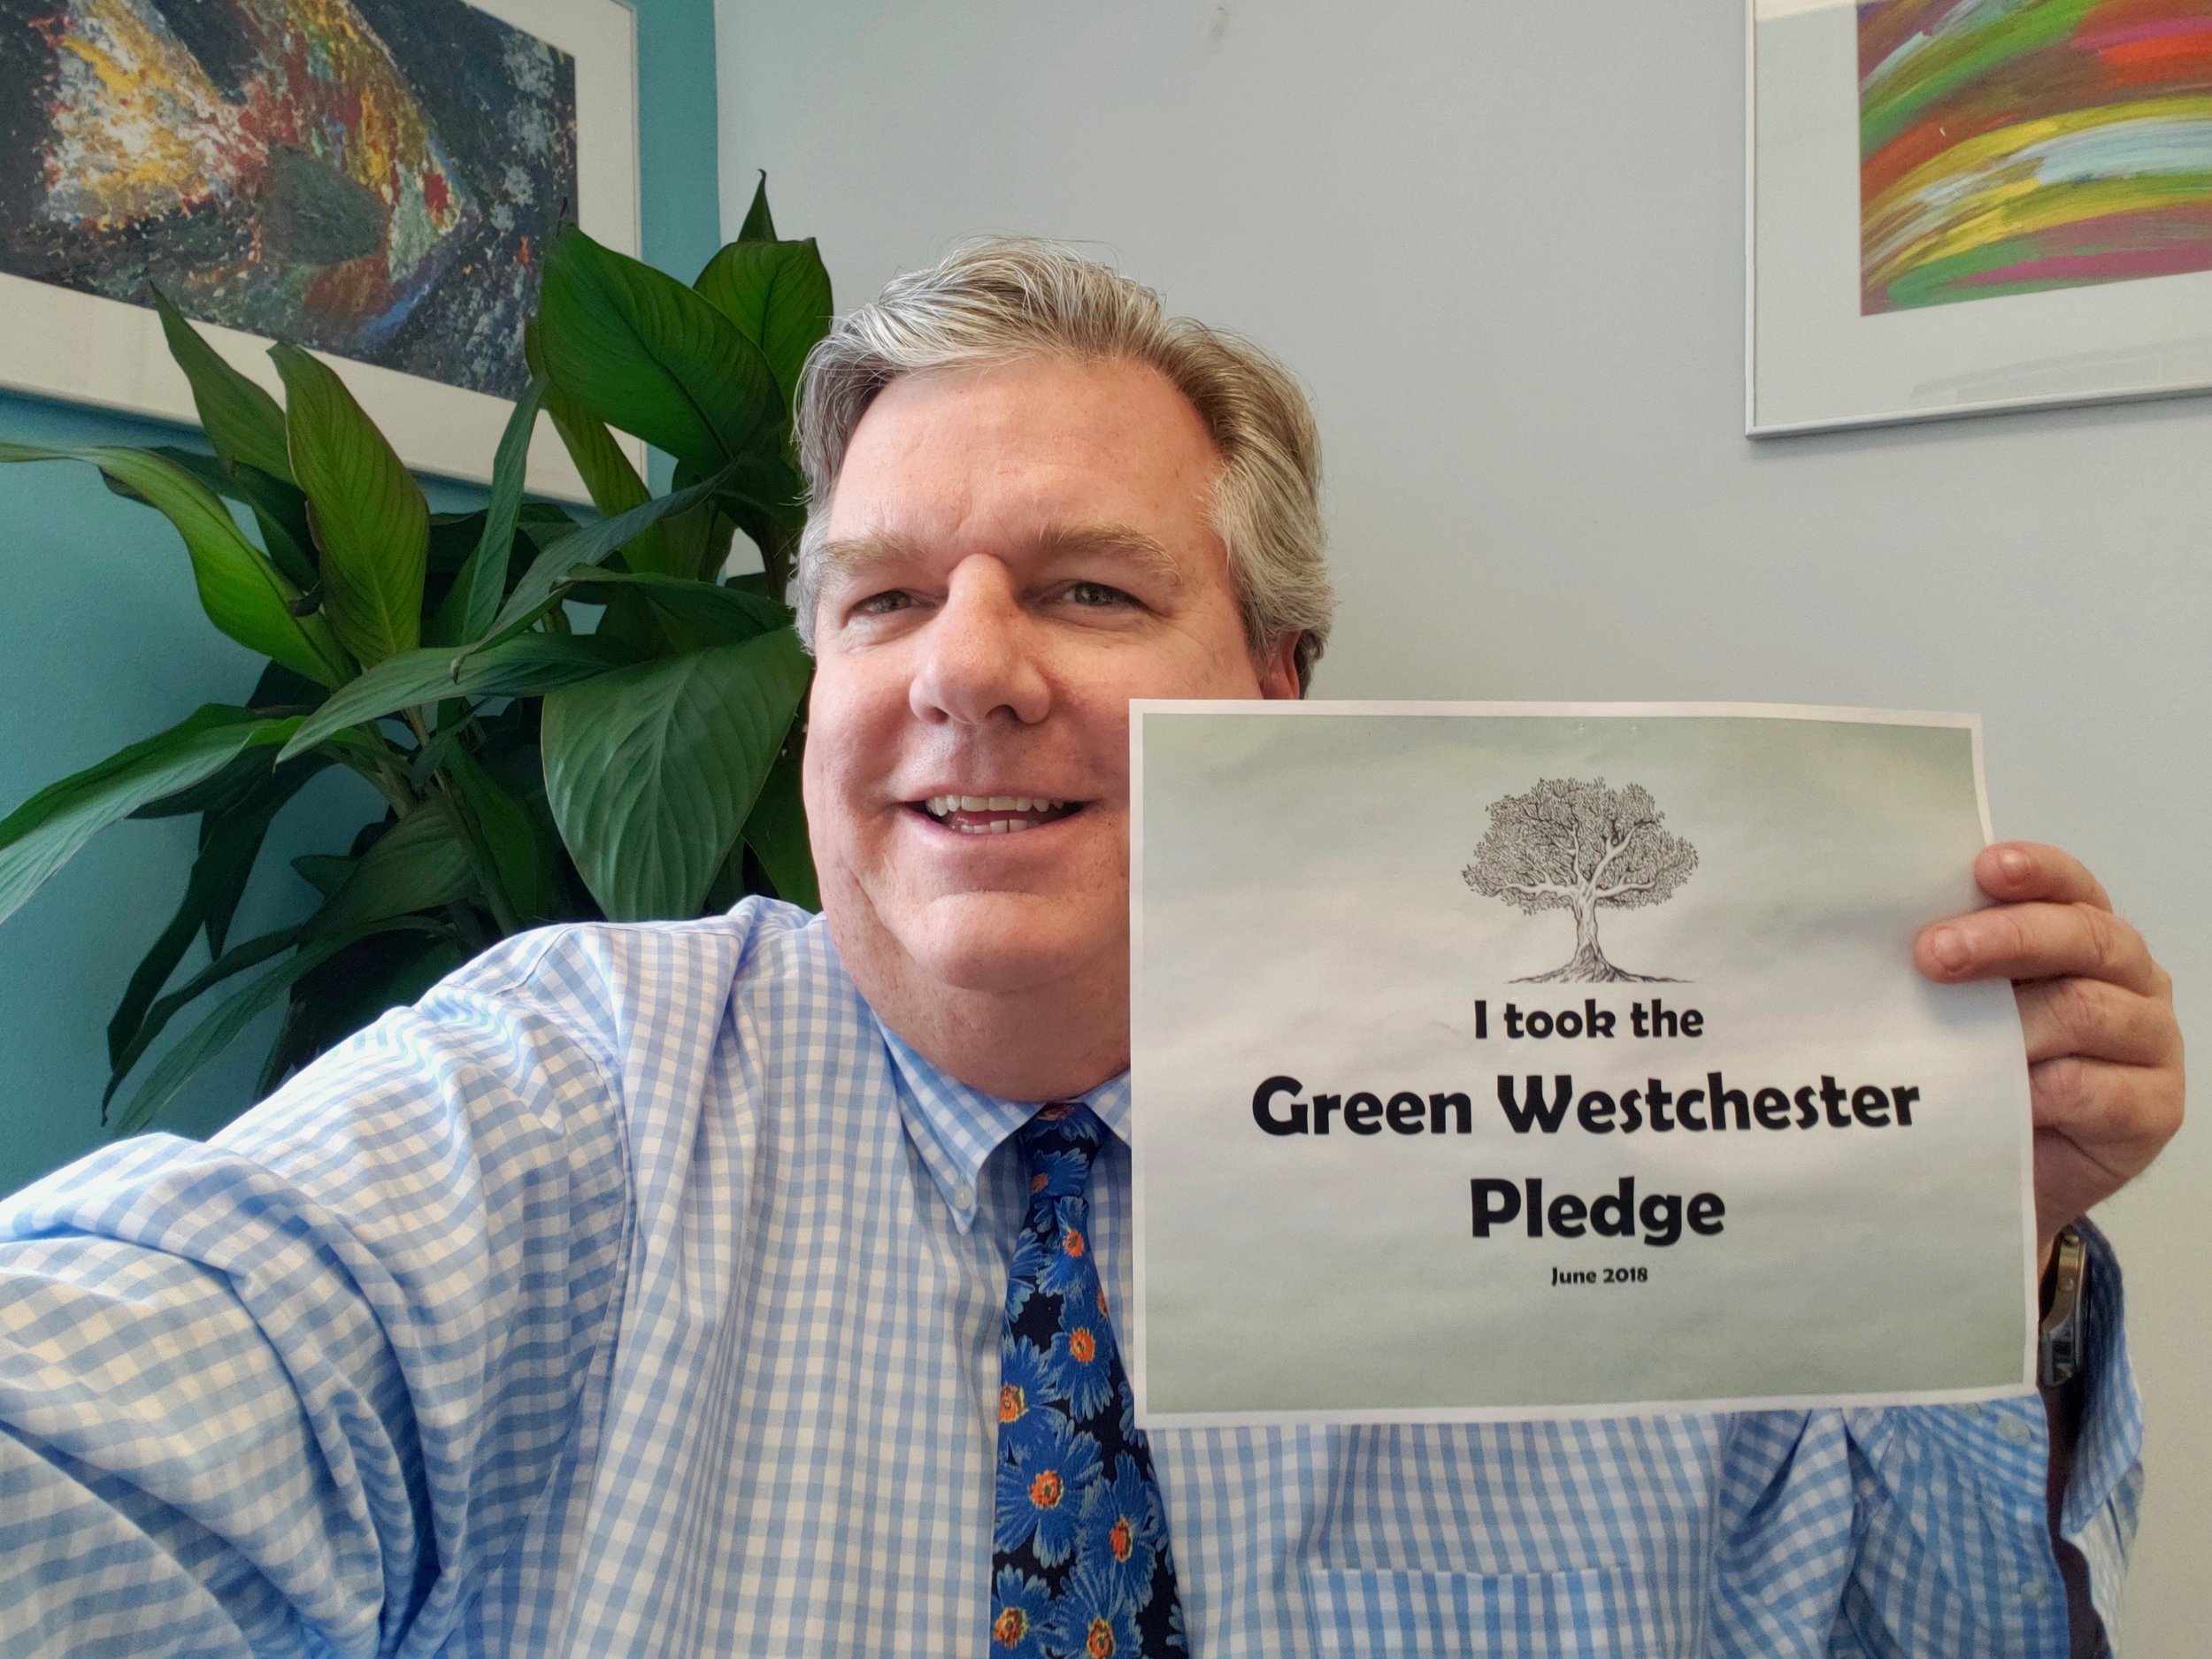 Peter has made the    Green Westchester Pledge   . Have you?